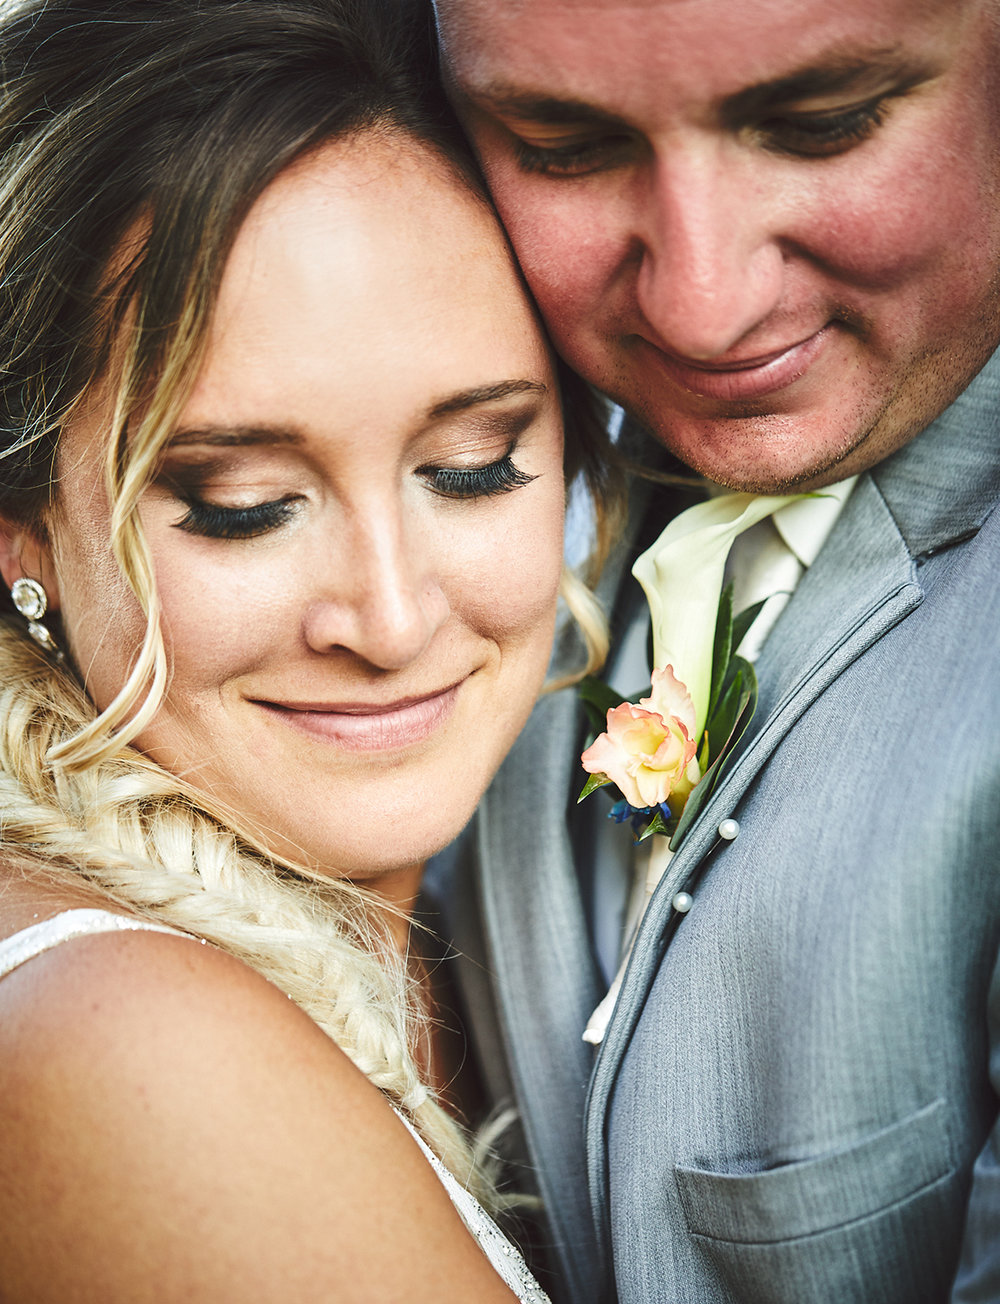 180811_RosebudEstatesWeddingPhotography_WesternNYWeddingPhotographer_By_BriJohnsonWeddings_0158.jpg